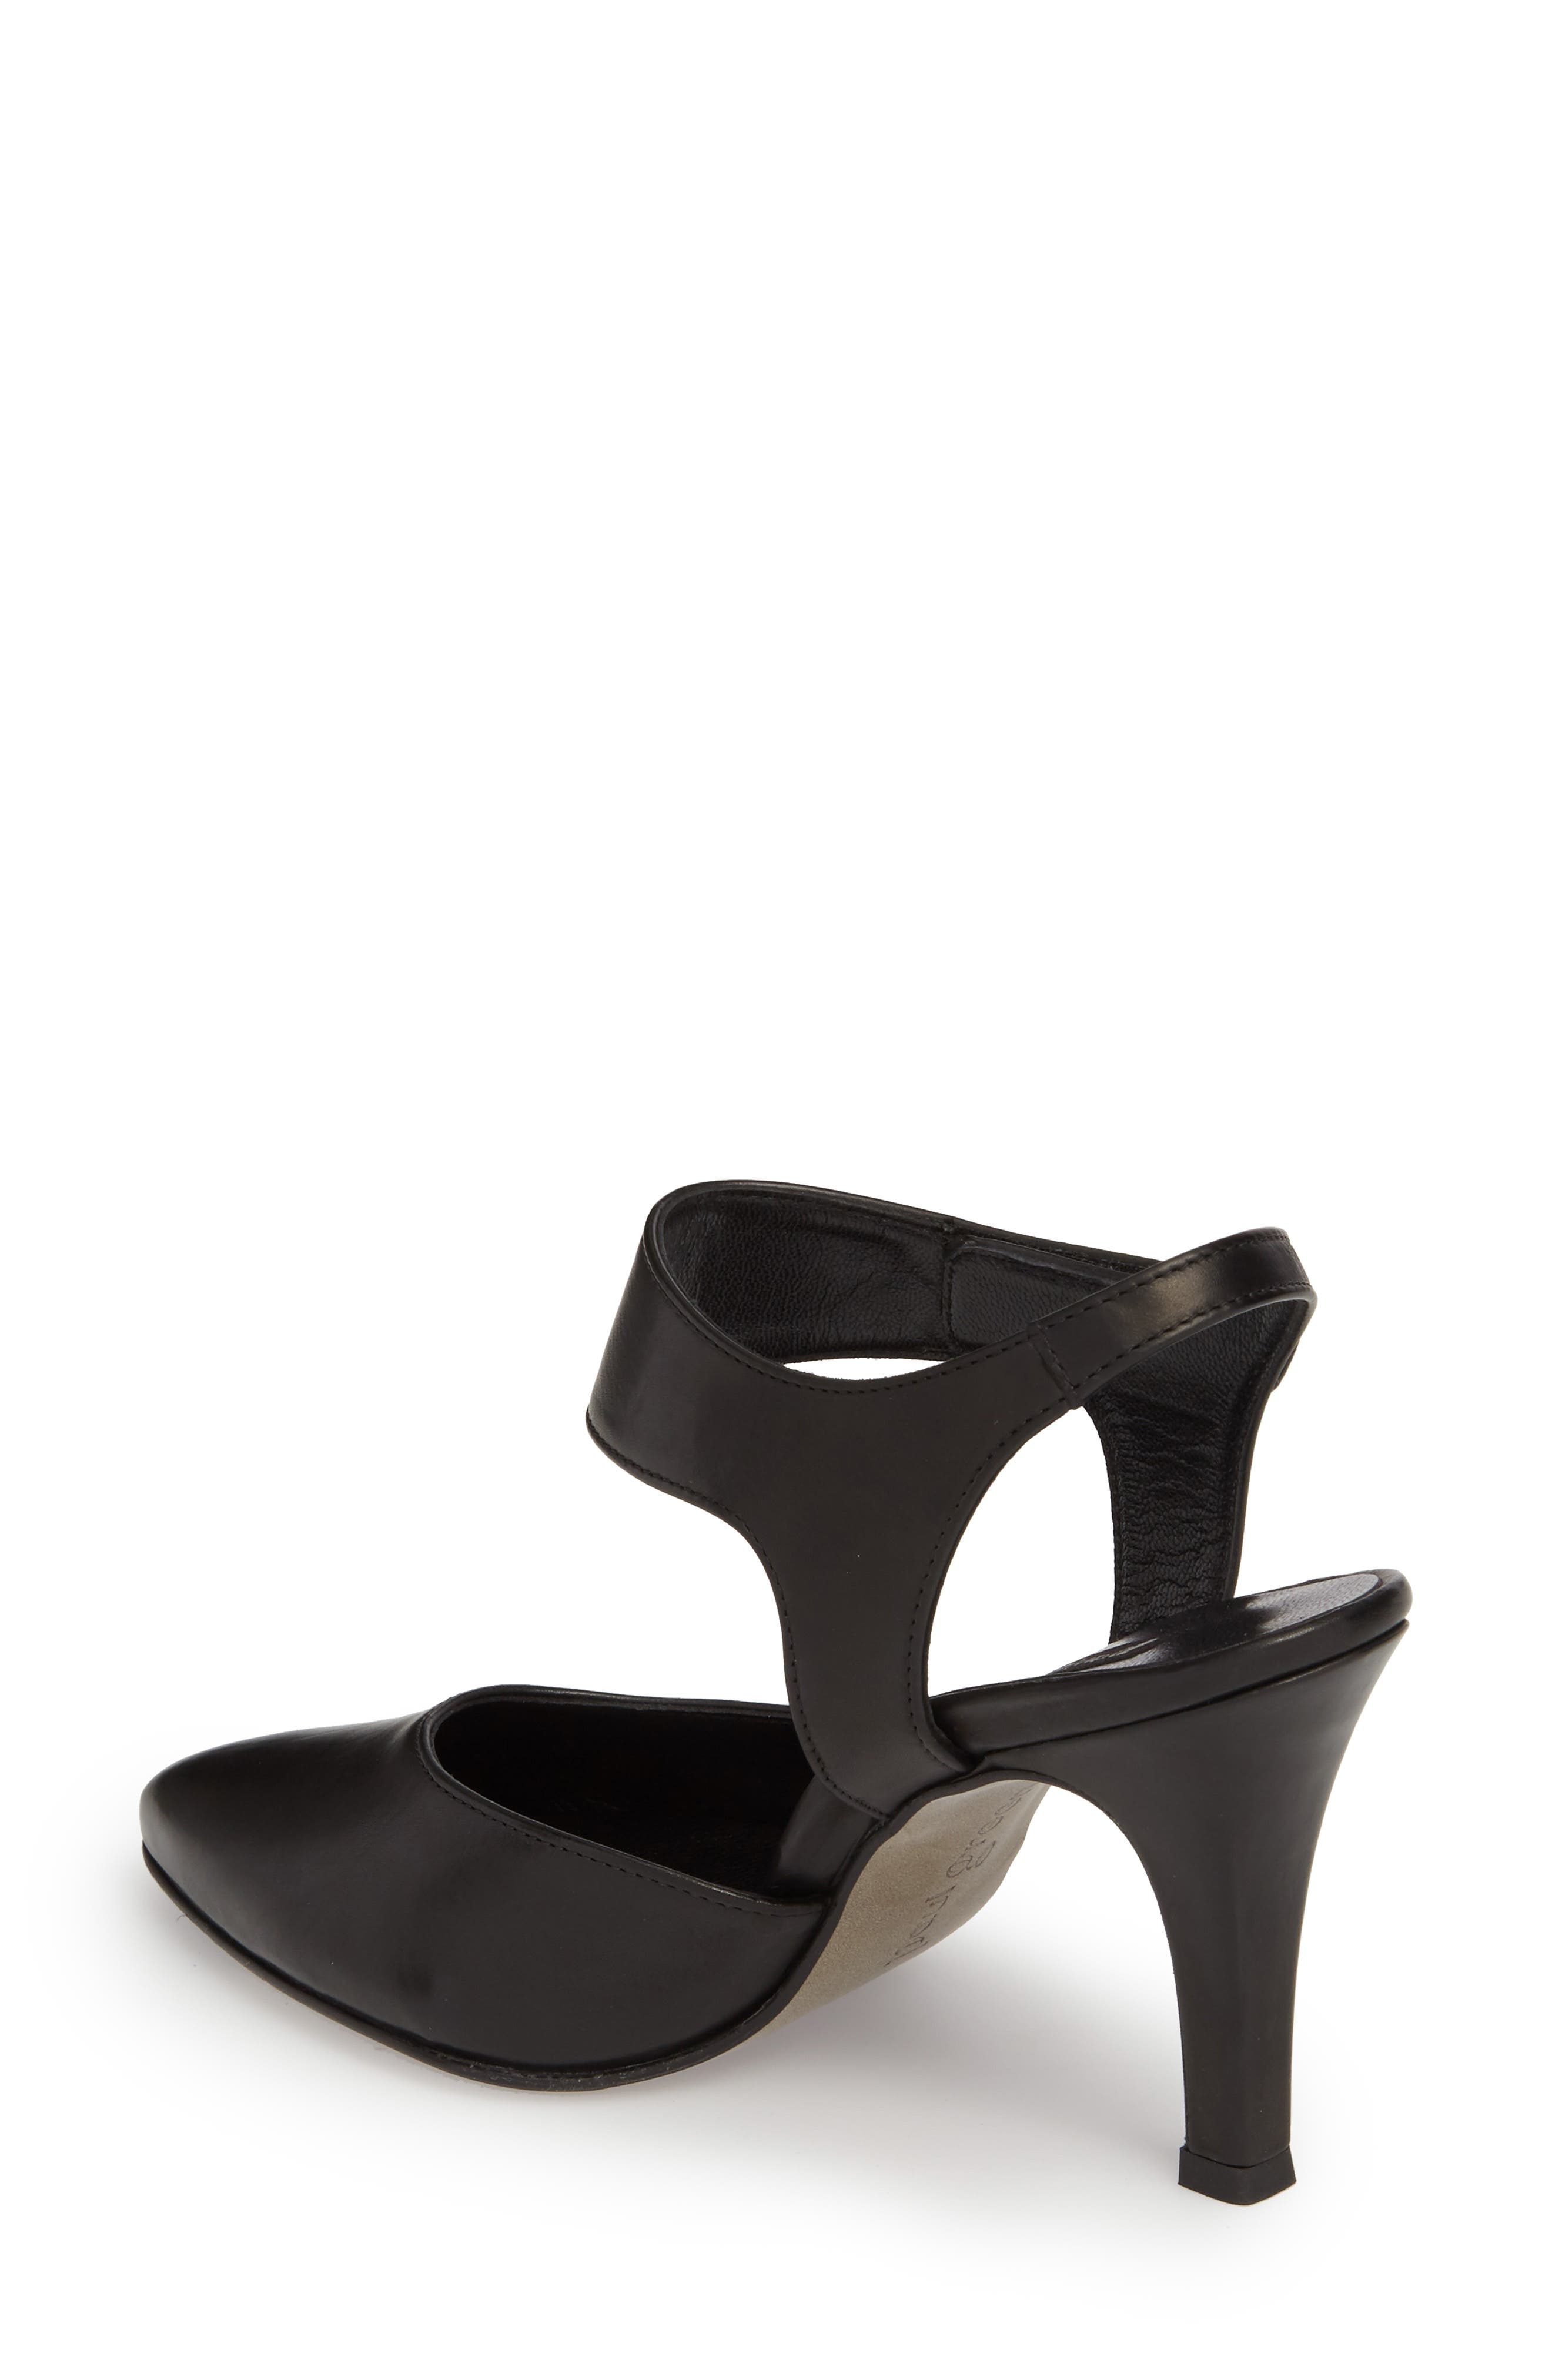 PAUL GREEN, Nicolette Pointy Toe Pump, Alternate thumbnail 2, color, BLACK LEATHER